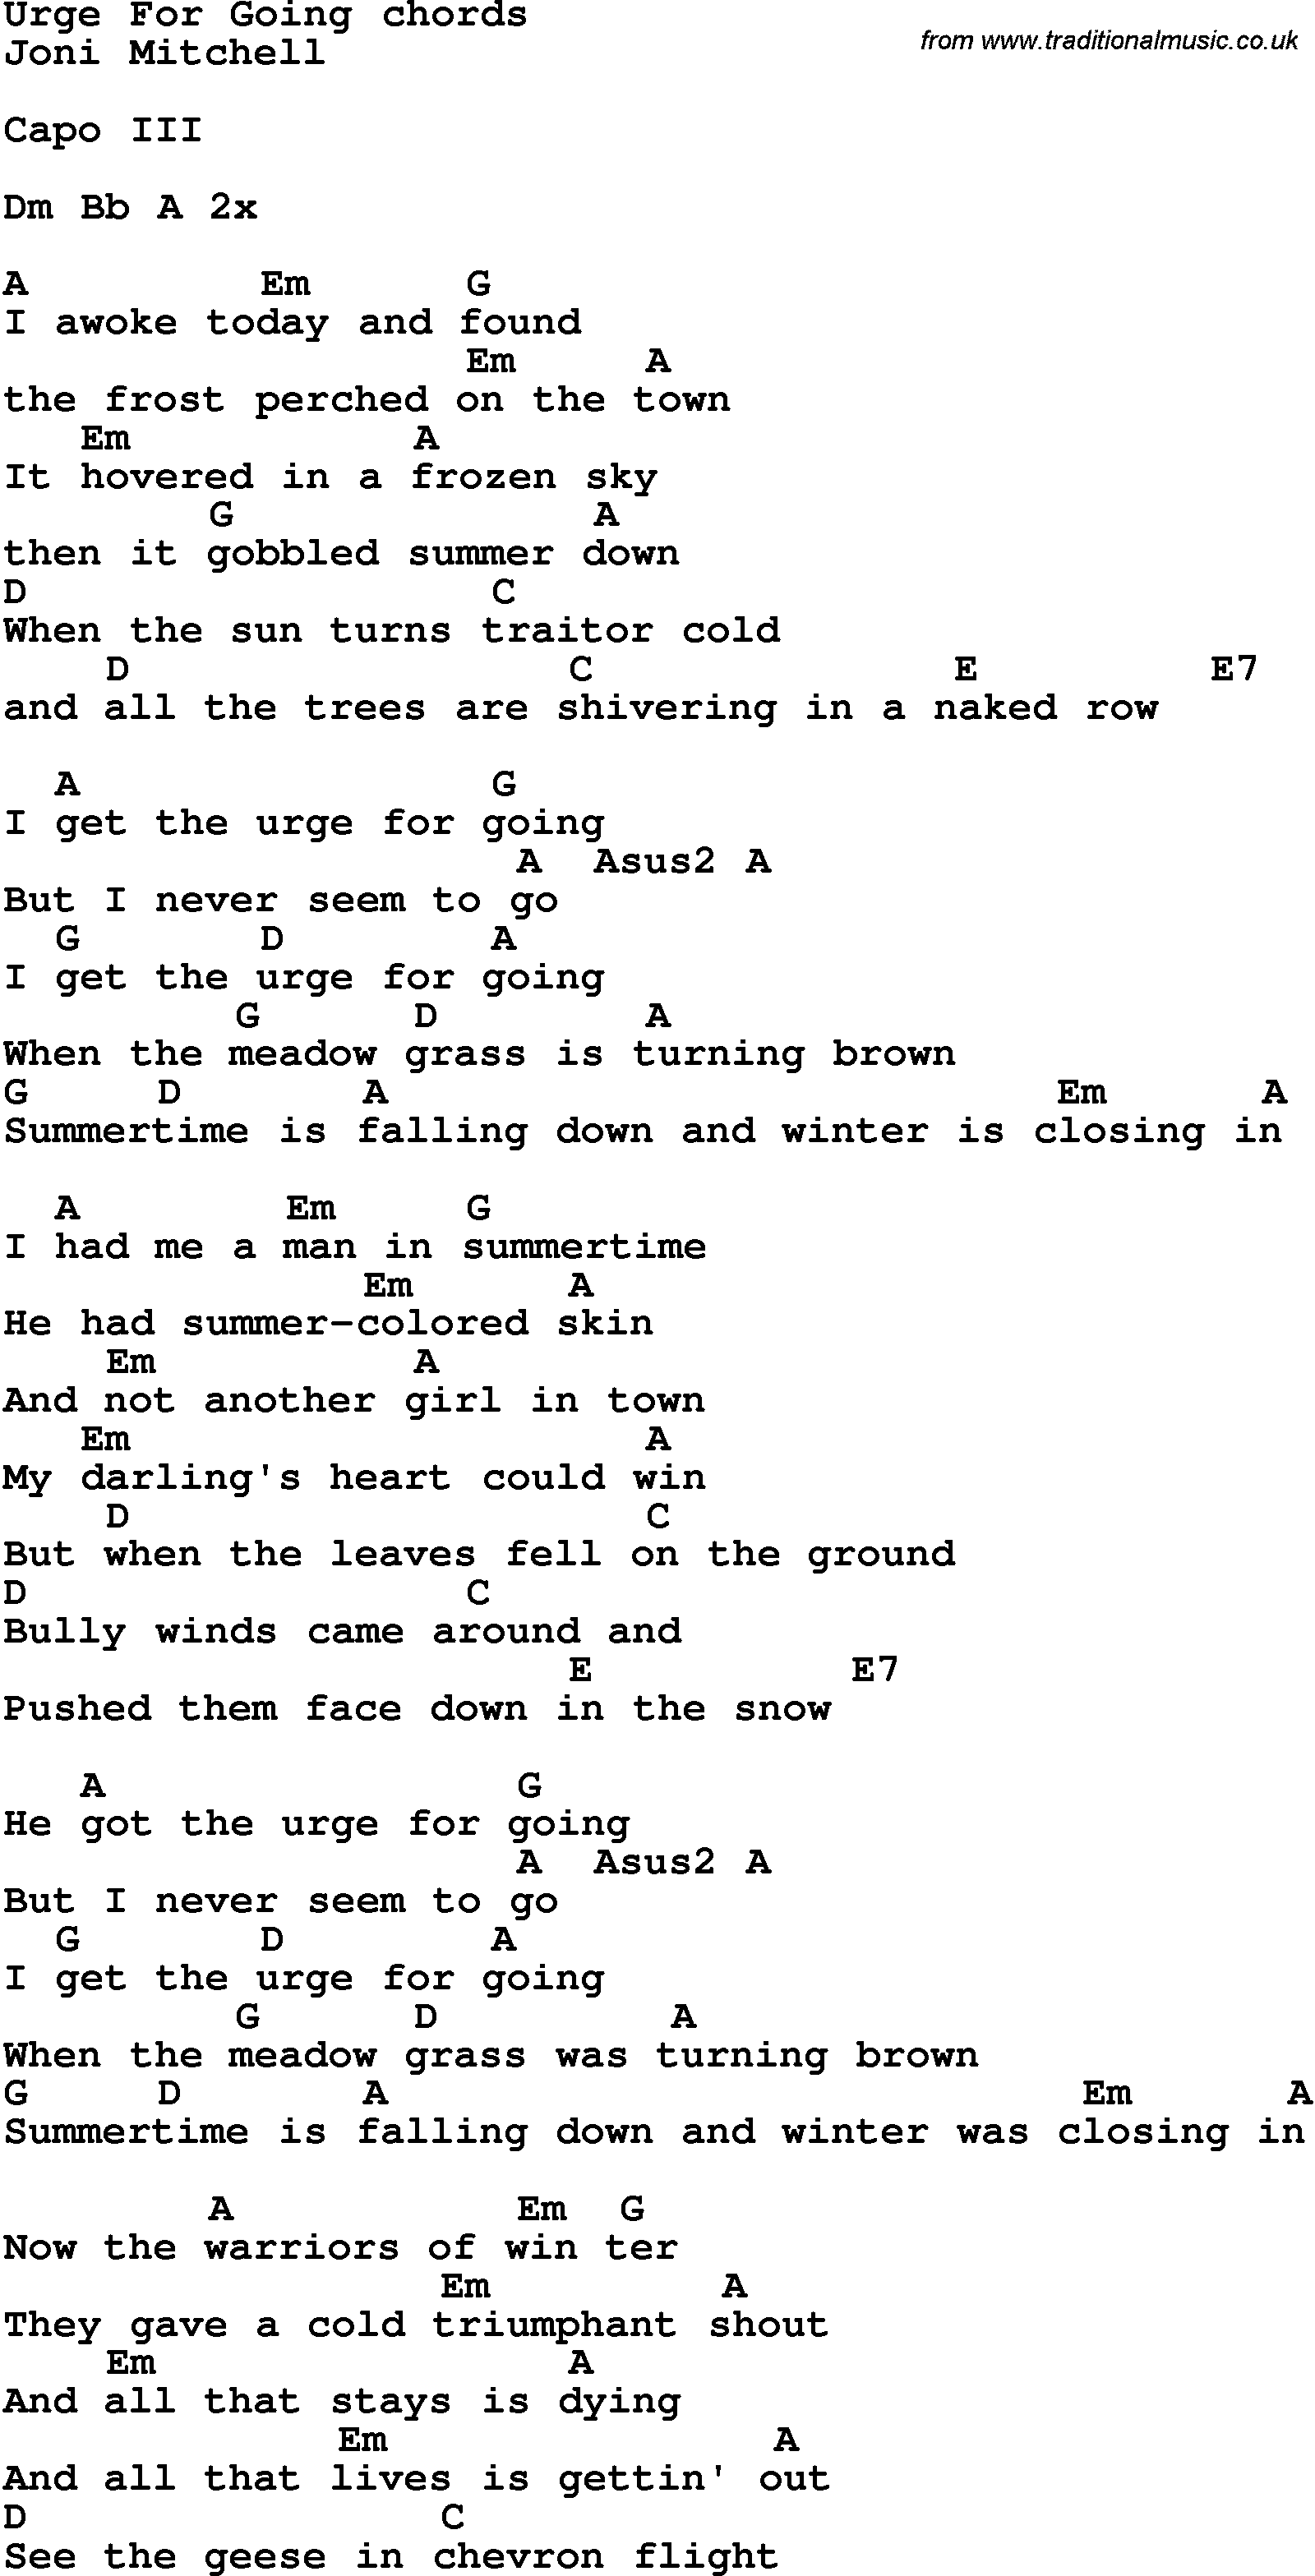 Song Lyrics With Guitar Chords For Urge For Going